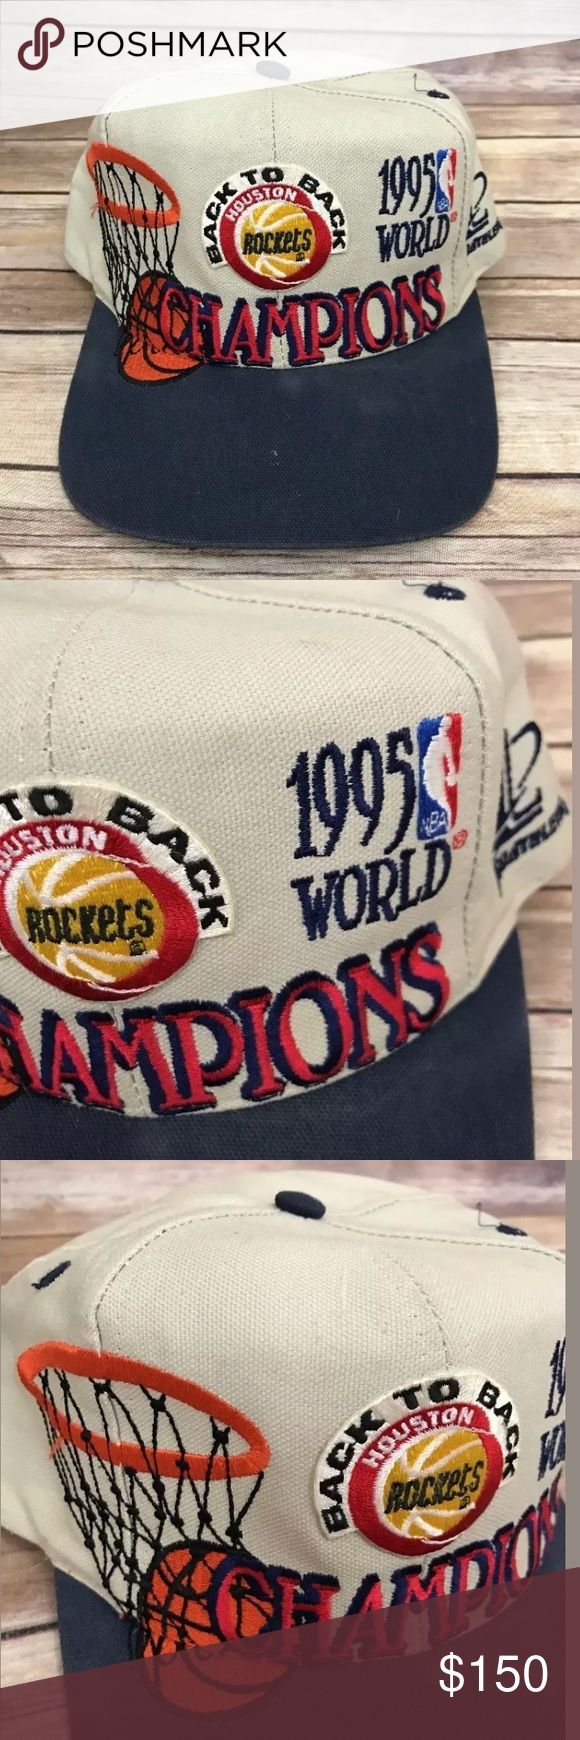 """Vintage 1995 Houston rockets NBA hat 1995 """"BACK TO BACK"""" Houston Rockets Championship hat by Starter with snap on back!!!     Every Houston Rockets fan would love this as an addition to your Houston Rocket collection! NBA Accessories Hats"""